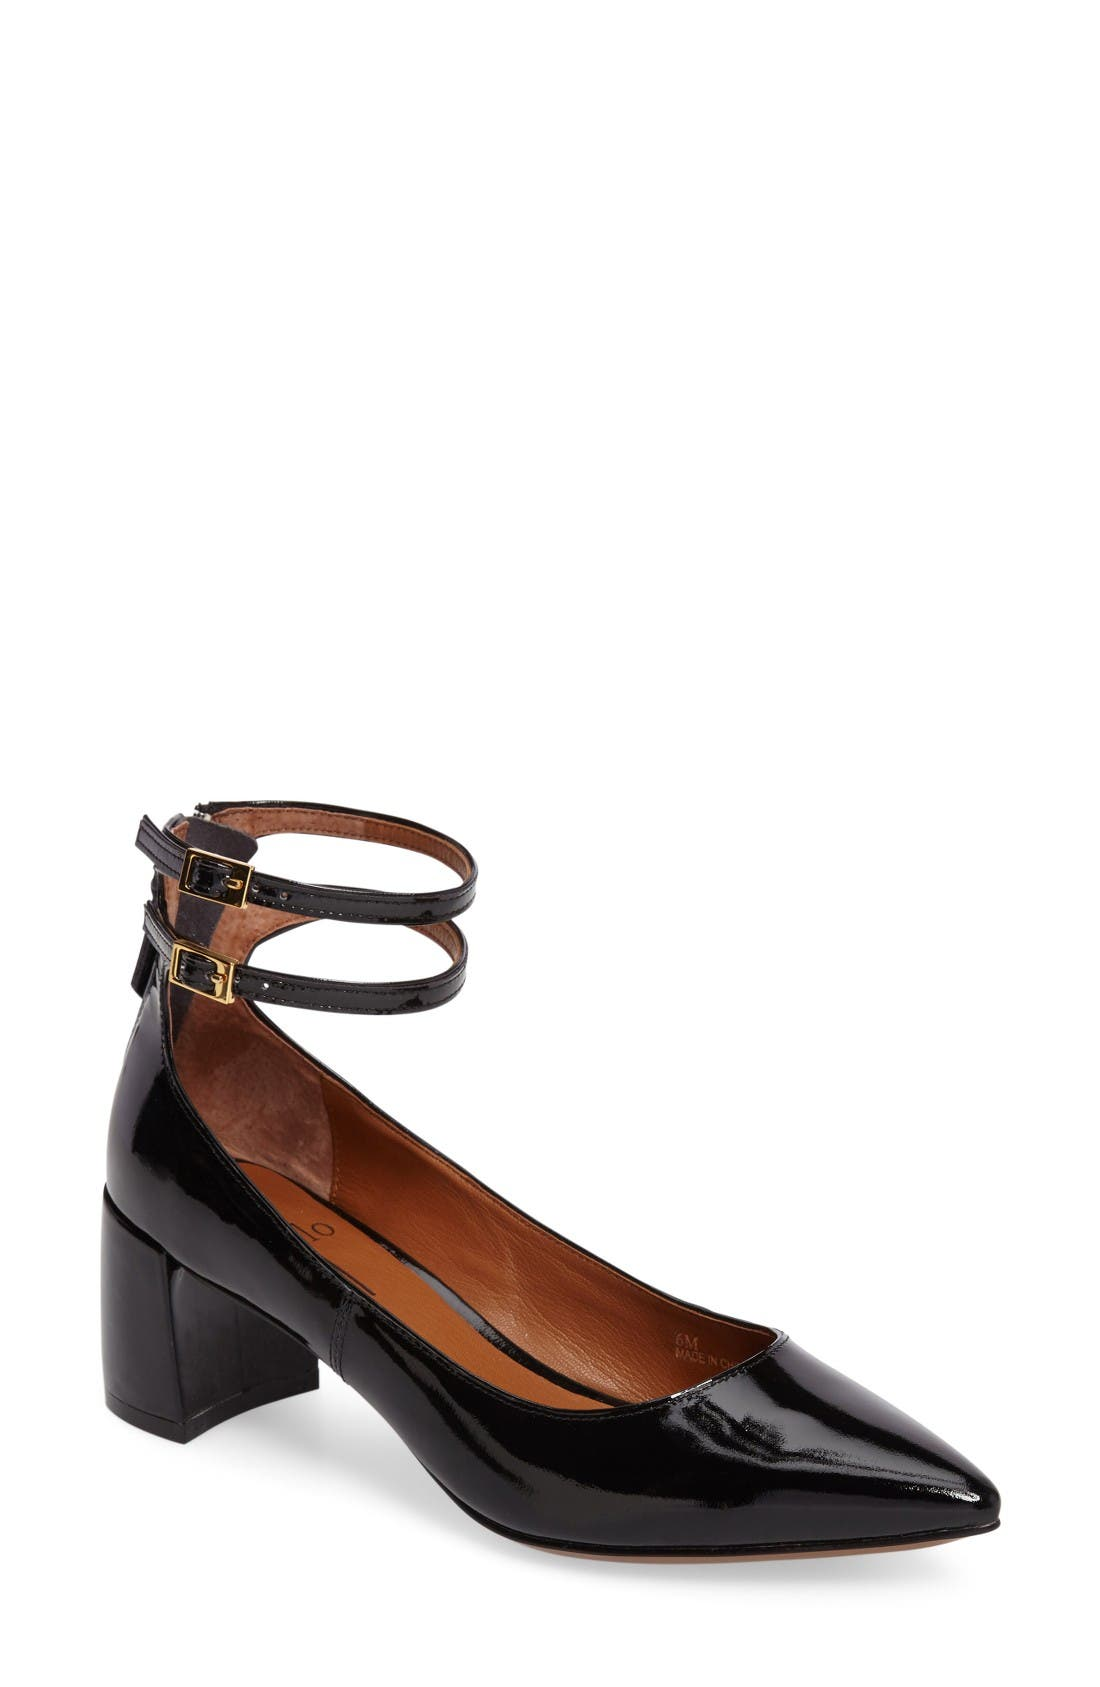 'Noel' Pointy Toe Ankle Strap Pump,                         Main,                         color, Black Patent Leather